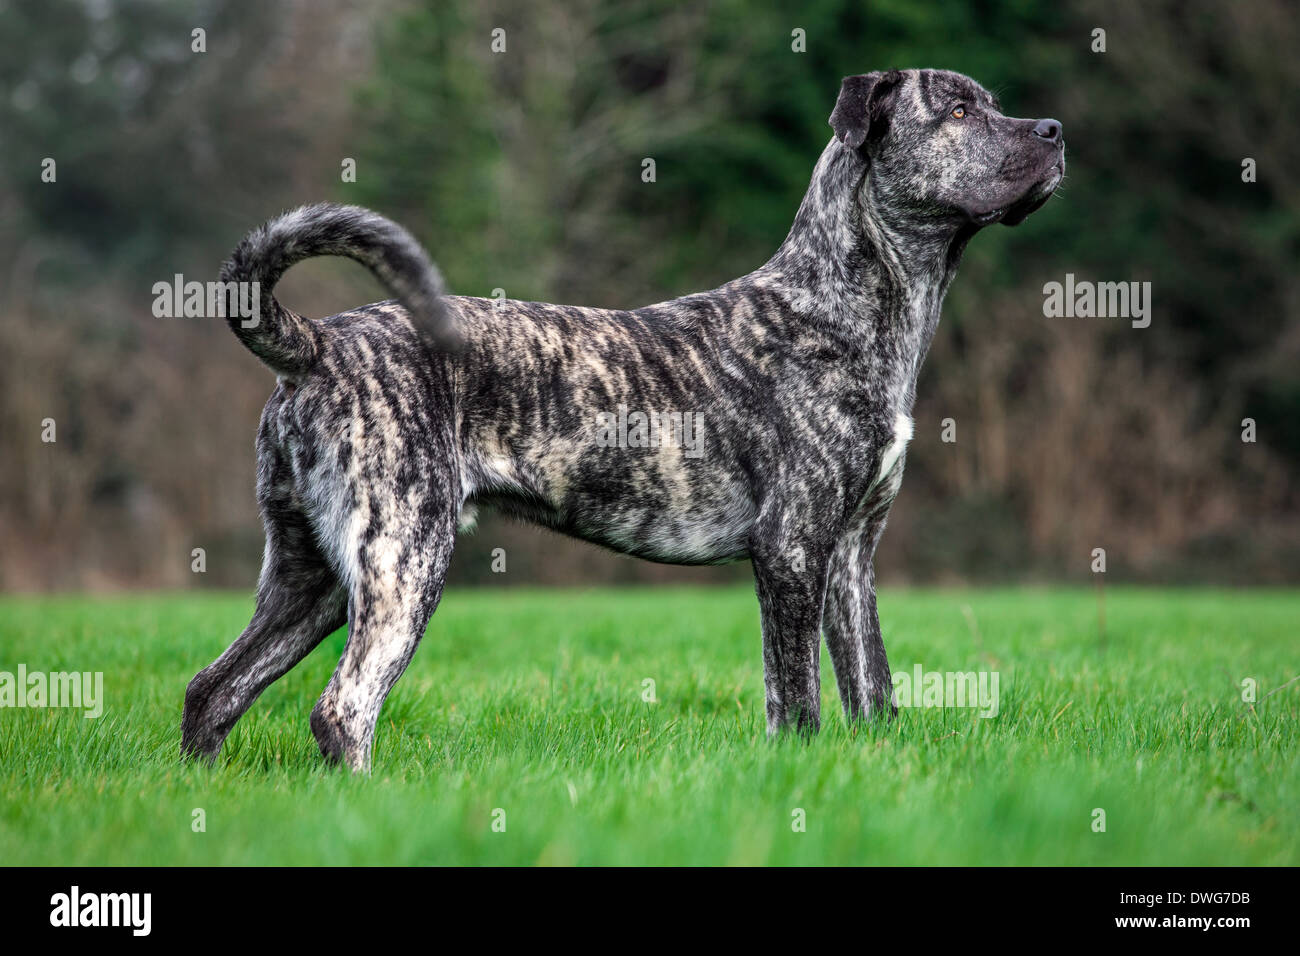 cane corso italiano stock photos cane corso italiano stock images